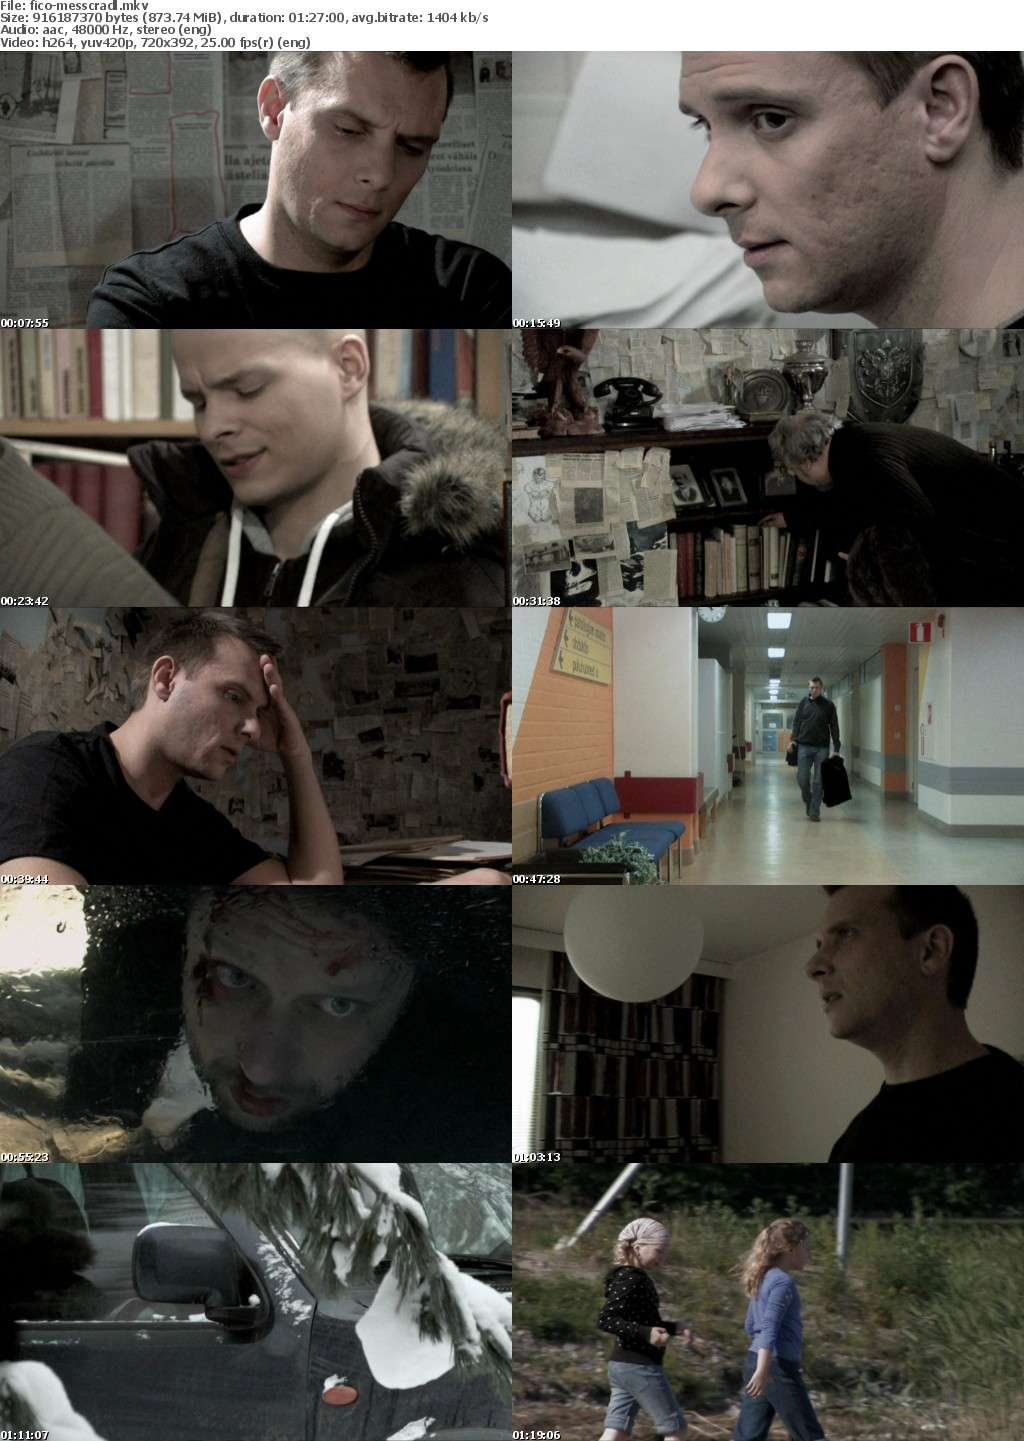 Messenger In The Cradle 2010 DVDRip x264-FiCO